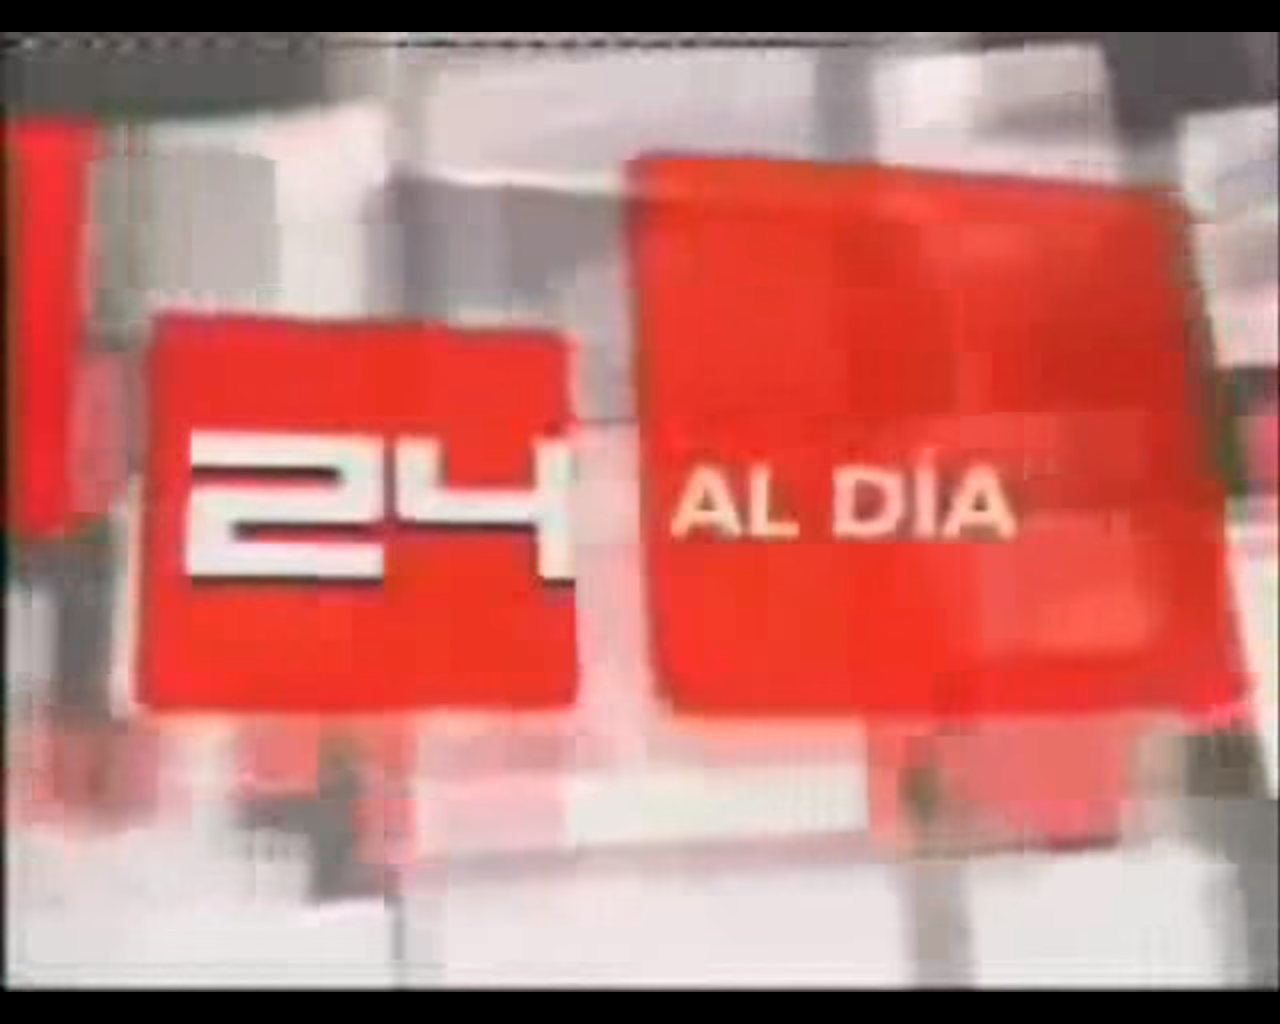 24 Horas (Chilean TV News)